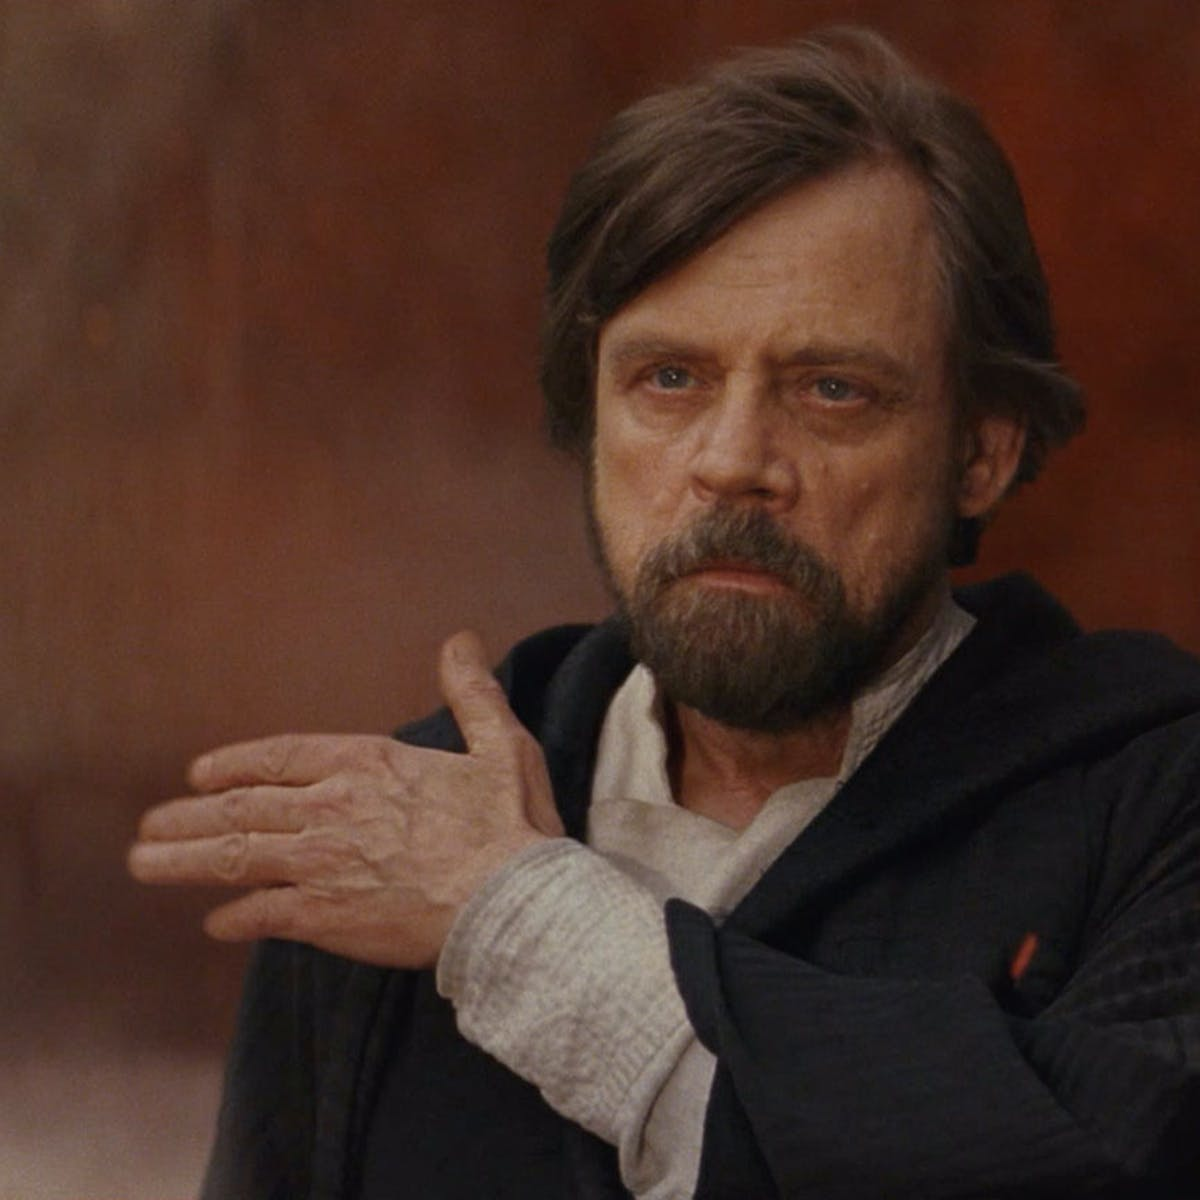 'Star Wars 9' theory teases a mindblowing young Luke Skywalker flashback